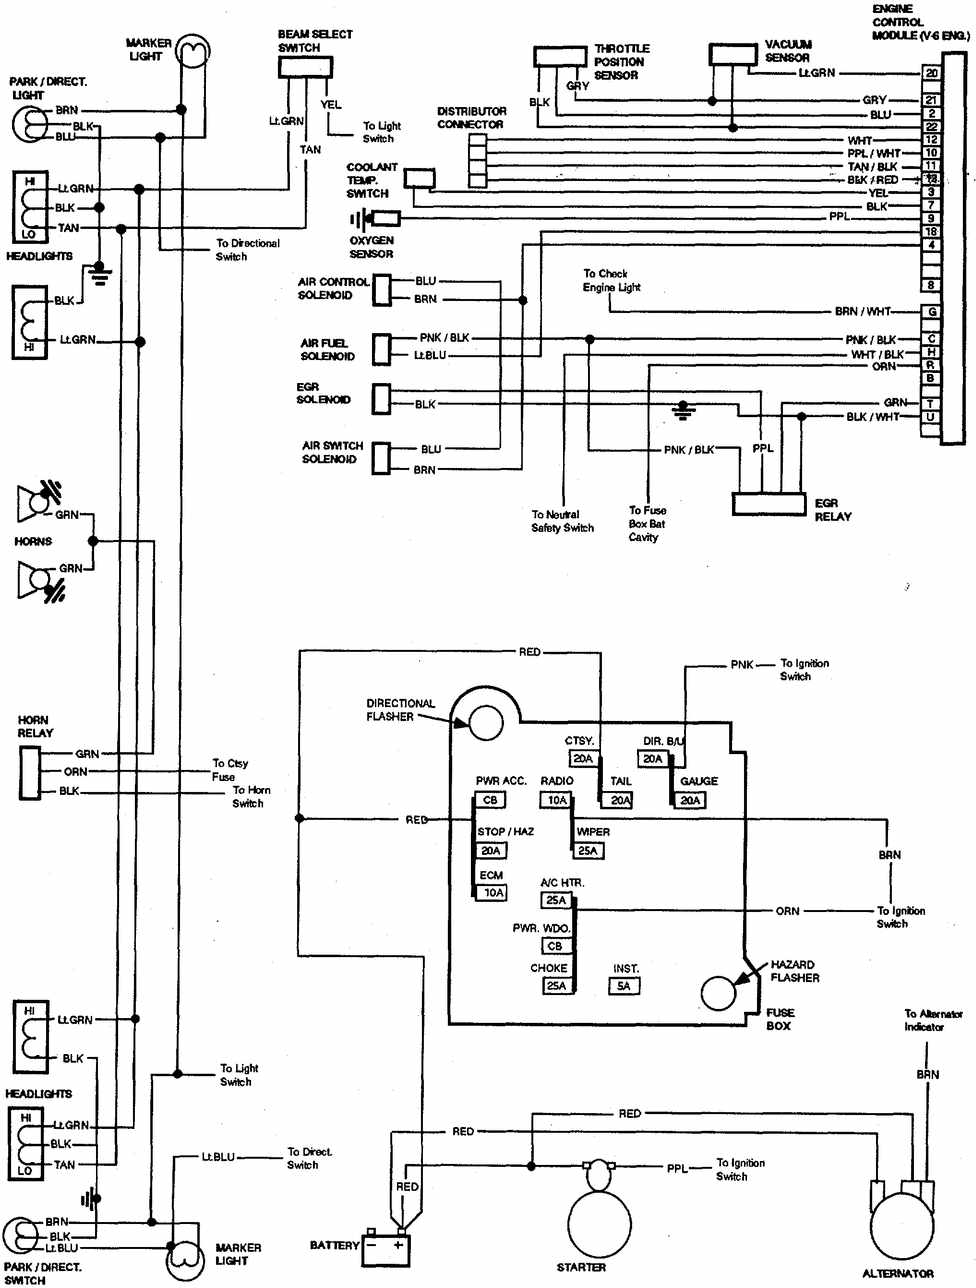 wiring diagram 1992 chevy camaro